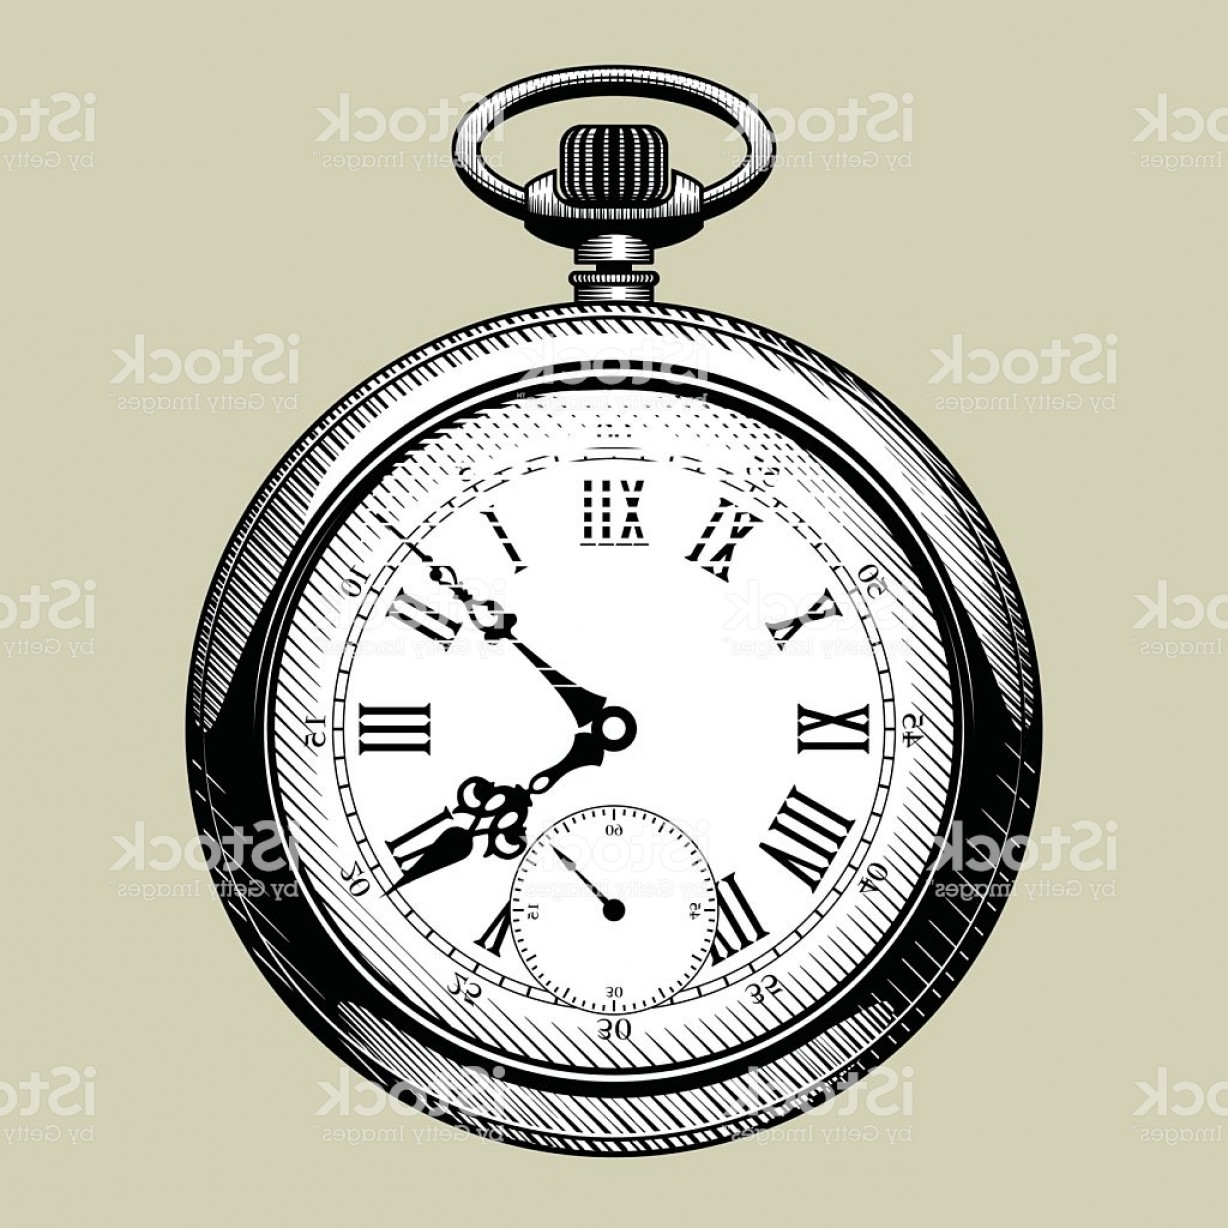 Stop Watch Vector Ai File: Old Clock Face Retro Pocket Watch Gm